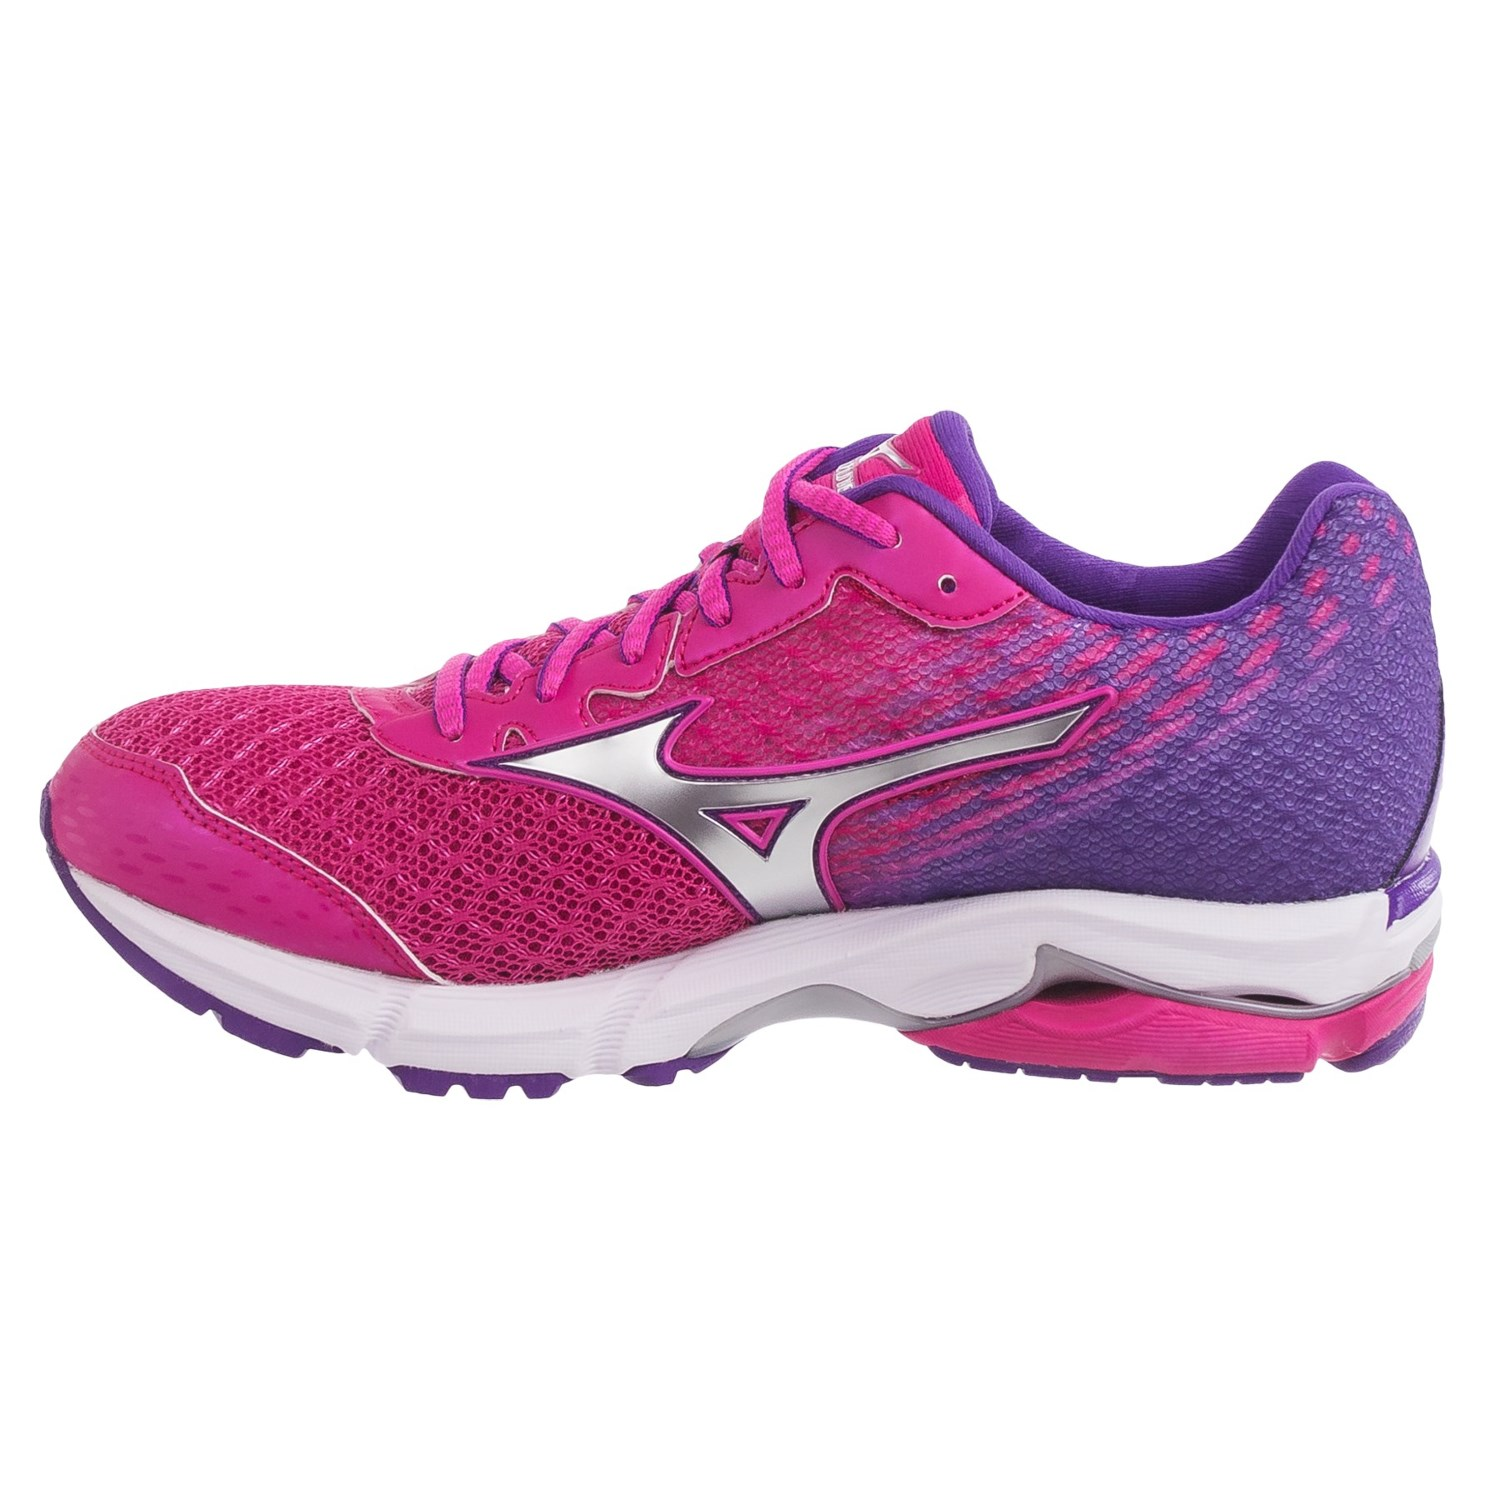 mizuno wave rider 19 running shoes for women save 59. Black Bedroom Furniture Sets. Home Design Ideas